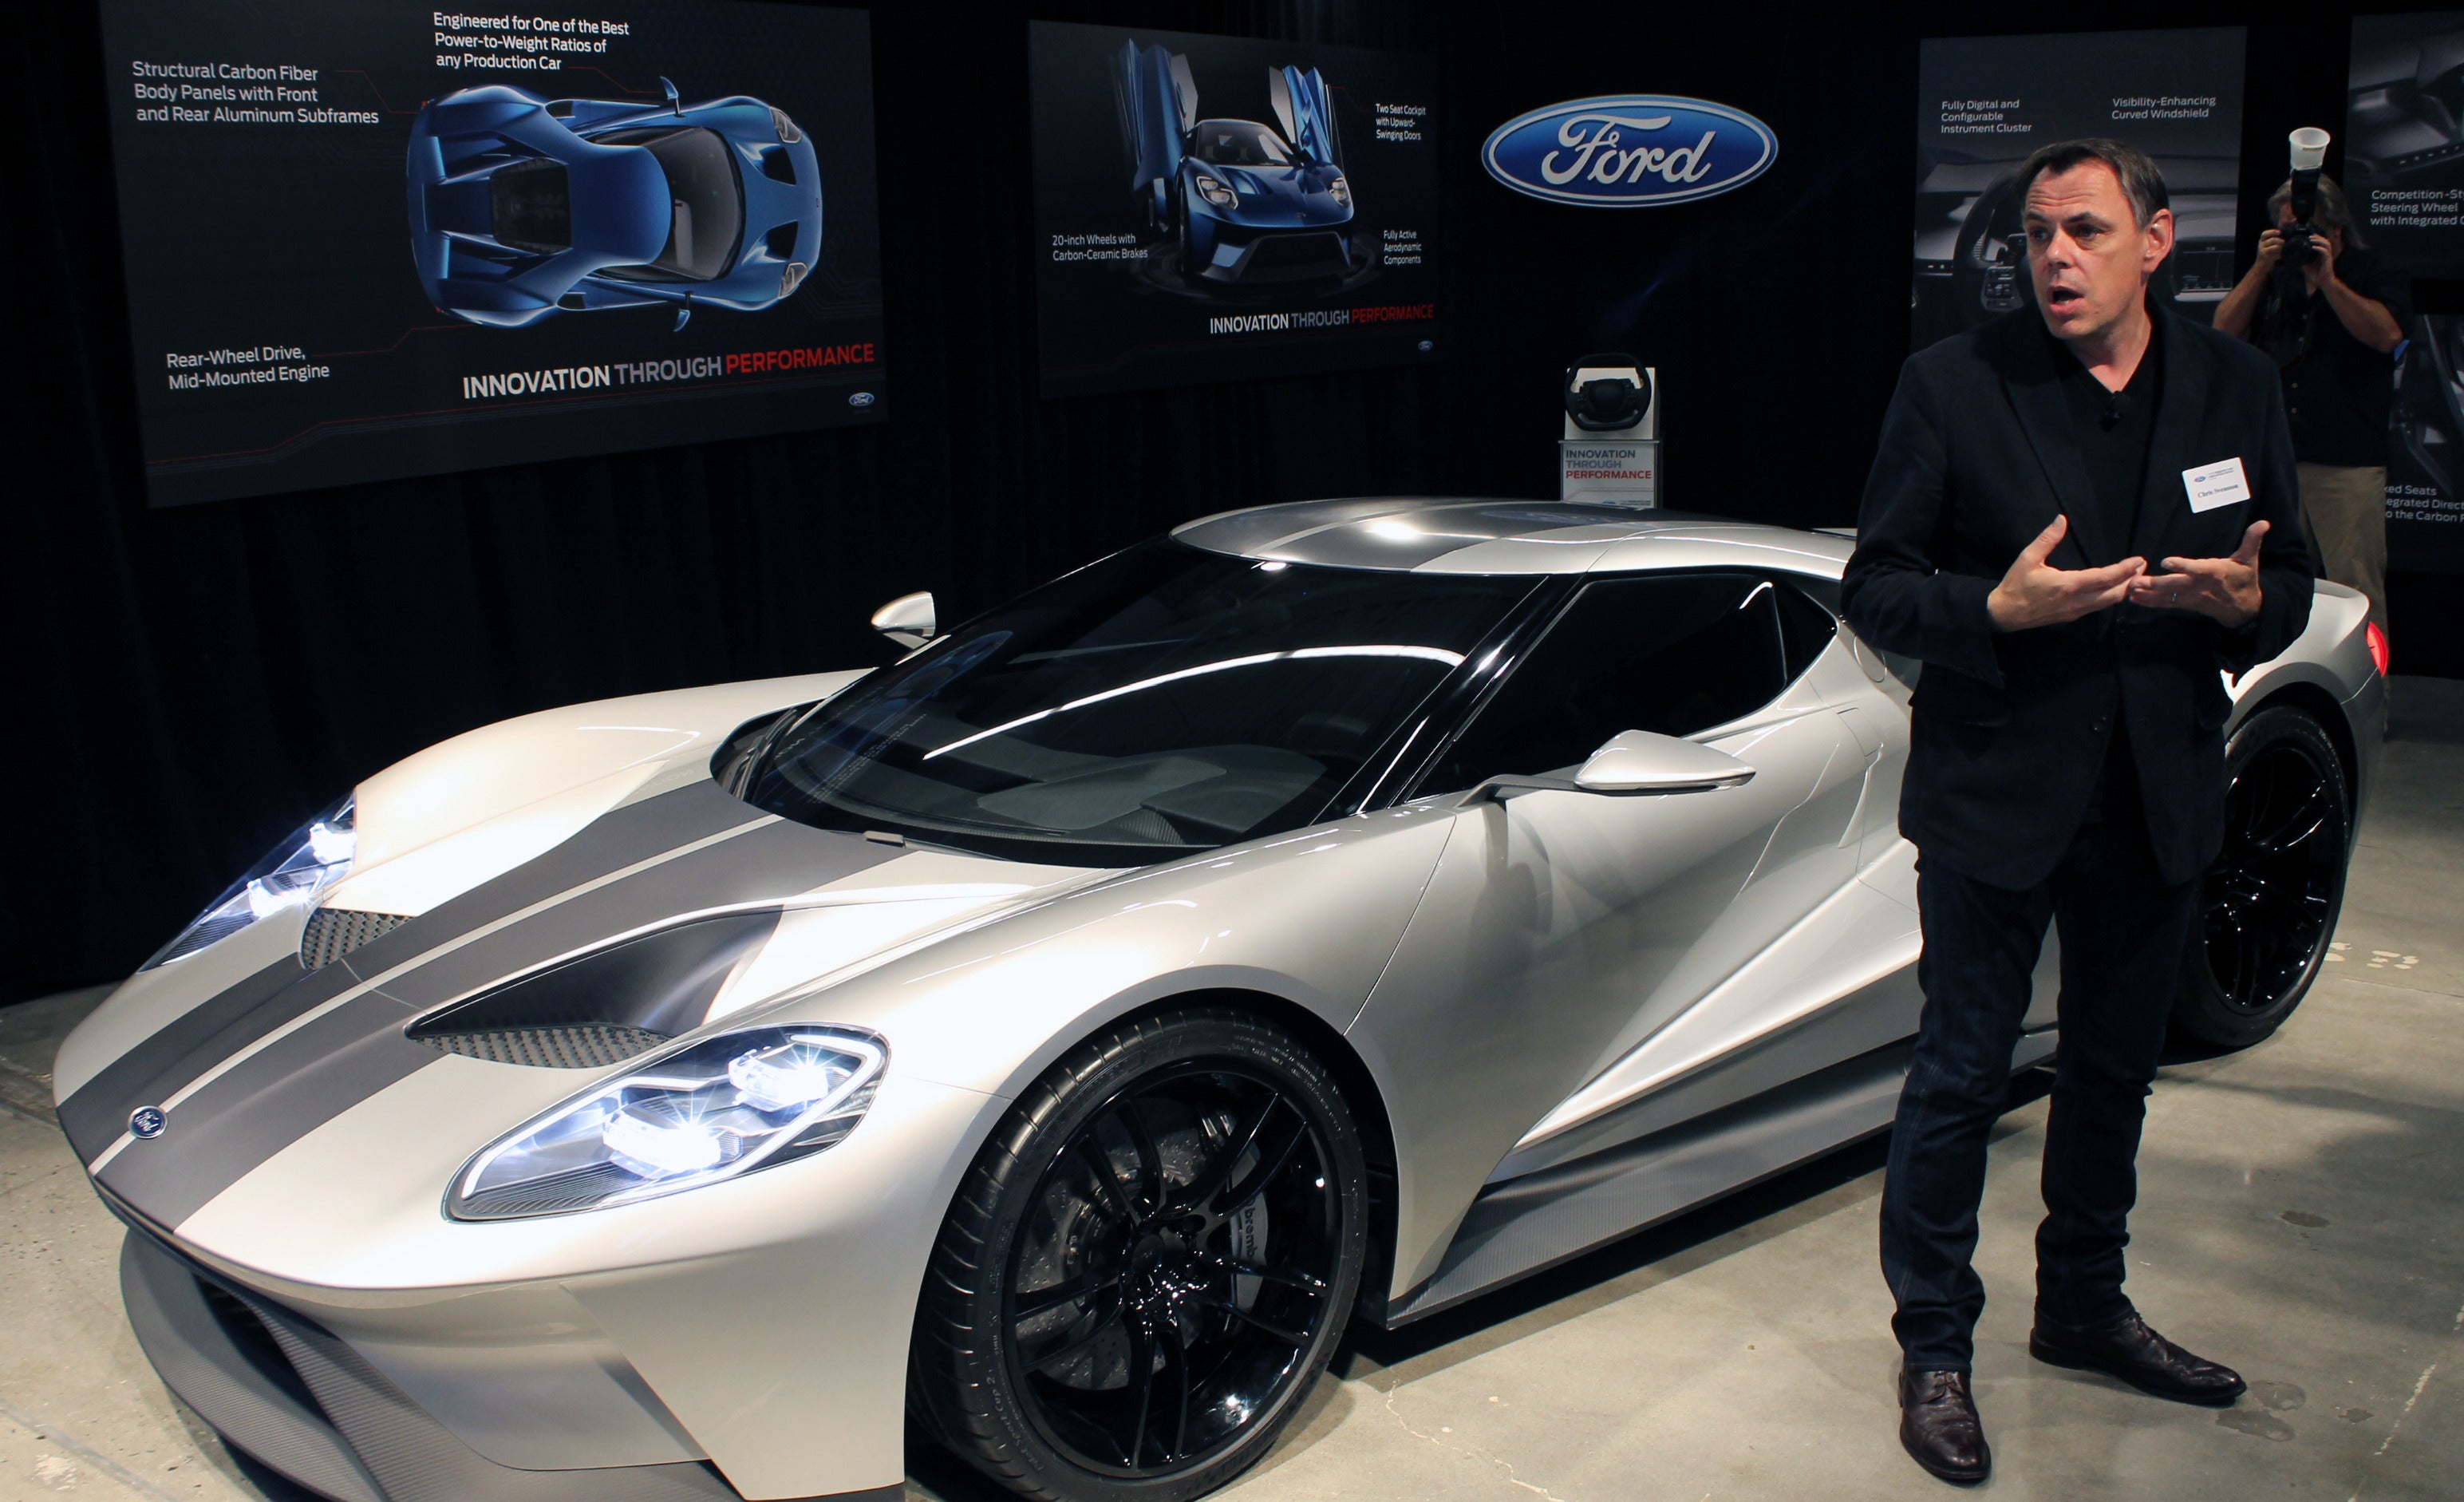 The Ford Gt Is Absolutely Sick With High Tech Innovation And You Need To Know Why